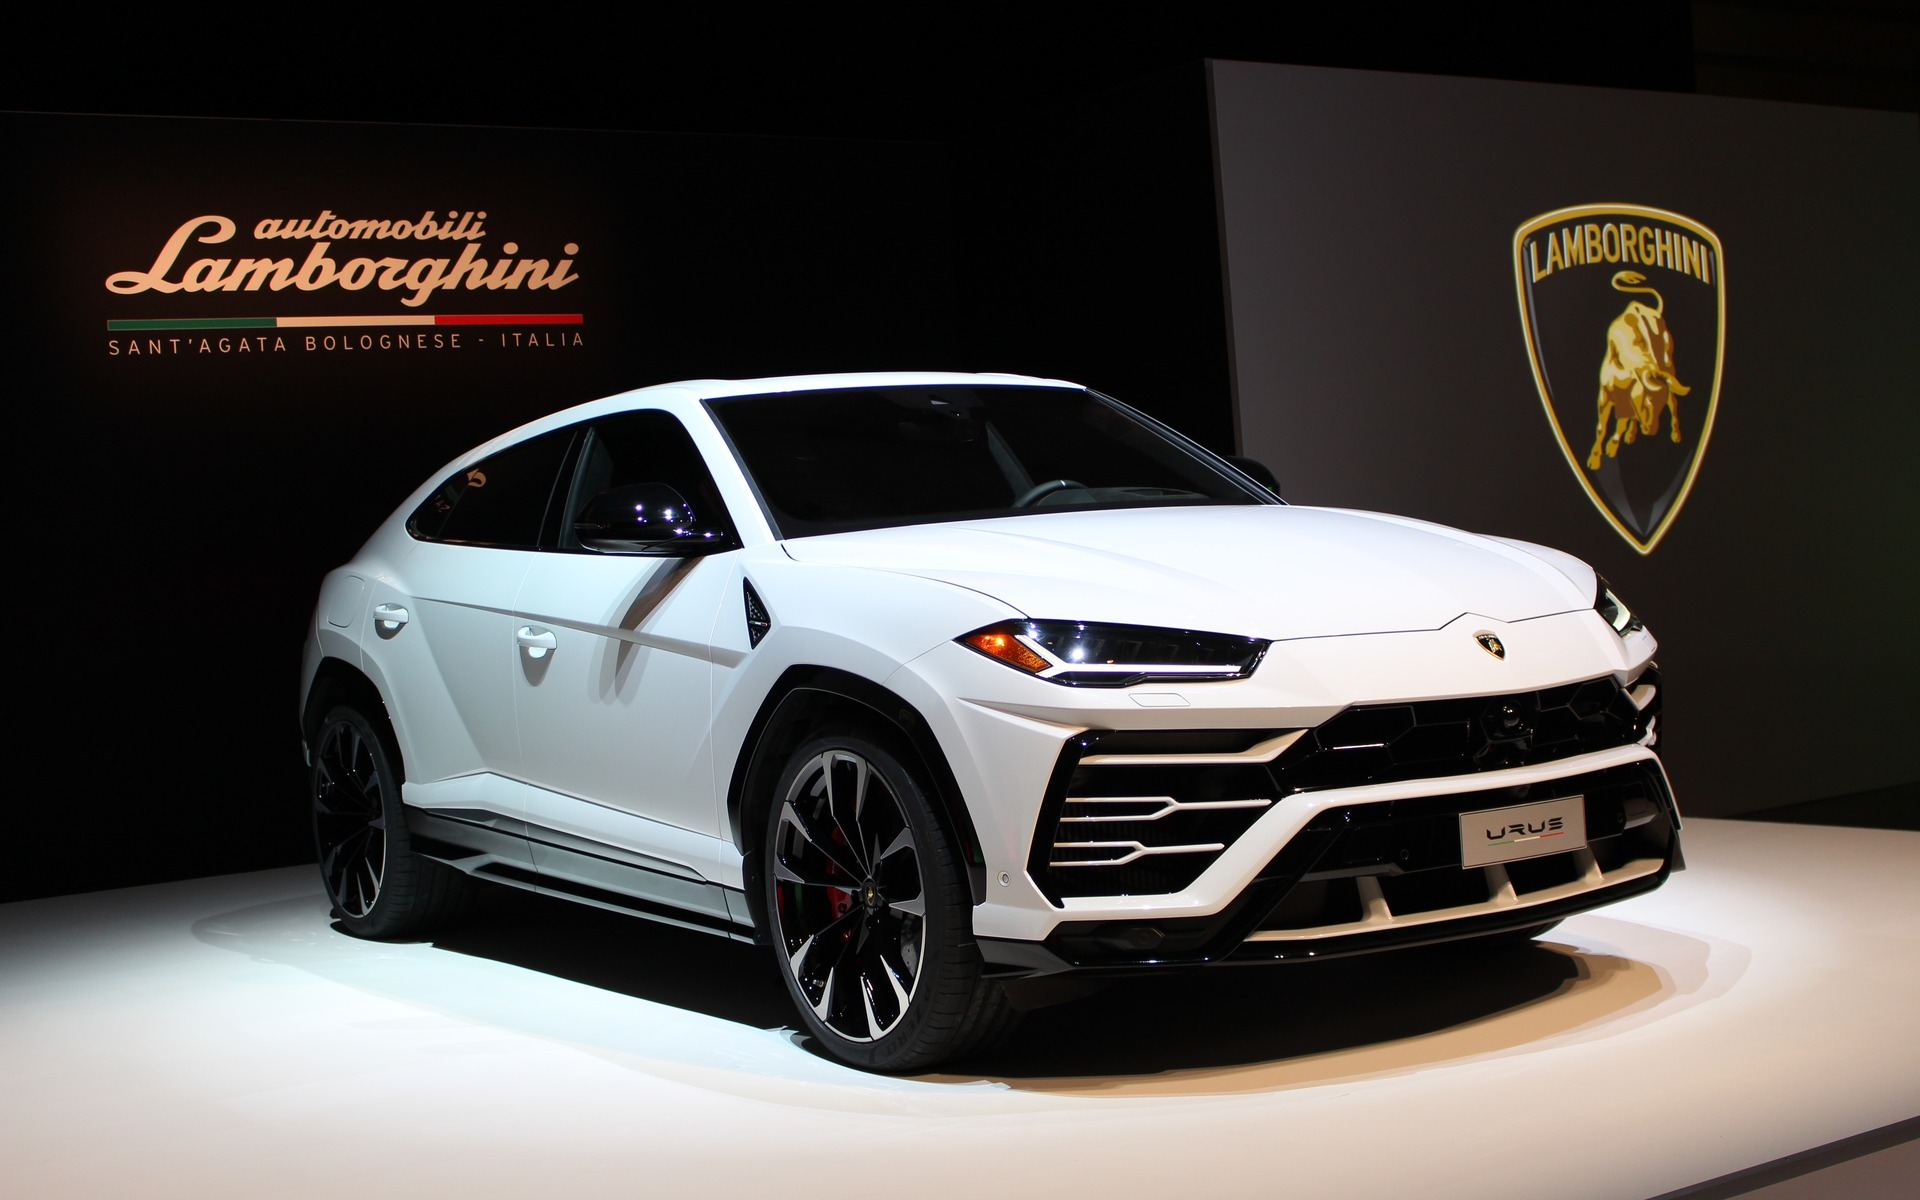 Car Dealers Toronto >> New Lamborghini Dealership Opens in Downtown Toronto - The ...